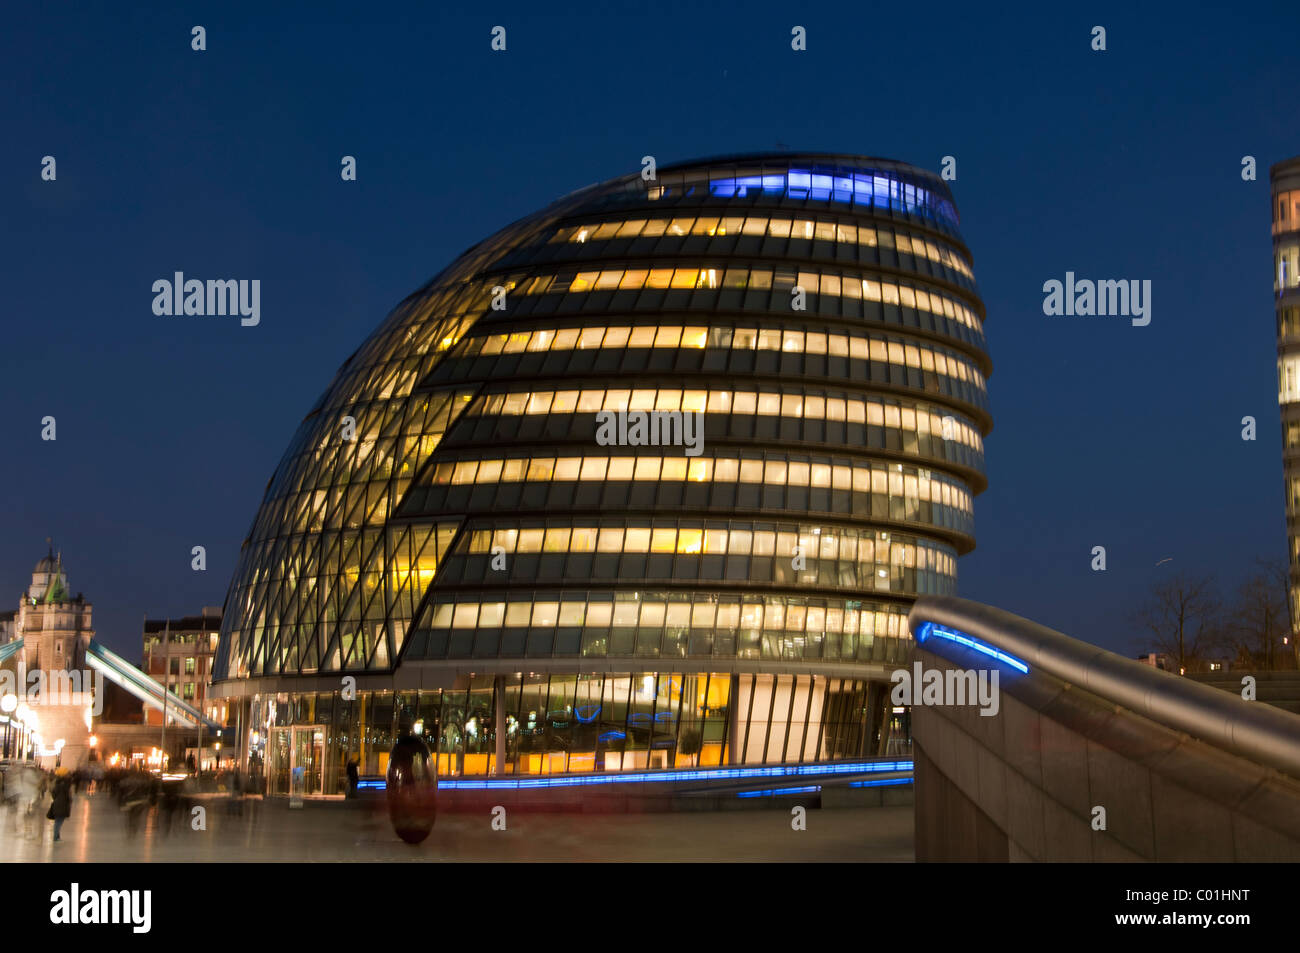 City Hall, home to Mayor of London, London Assembly and Greater London Authority GLA, London, England - Stock Image